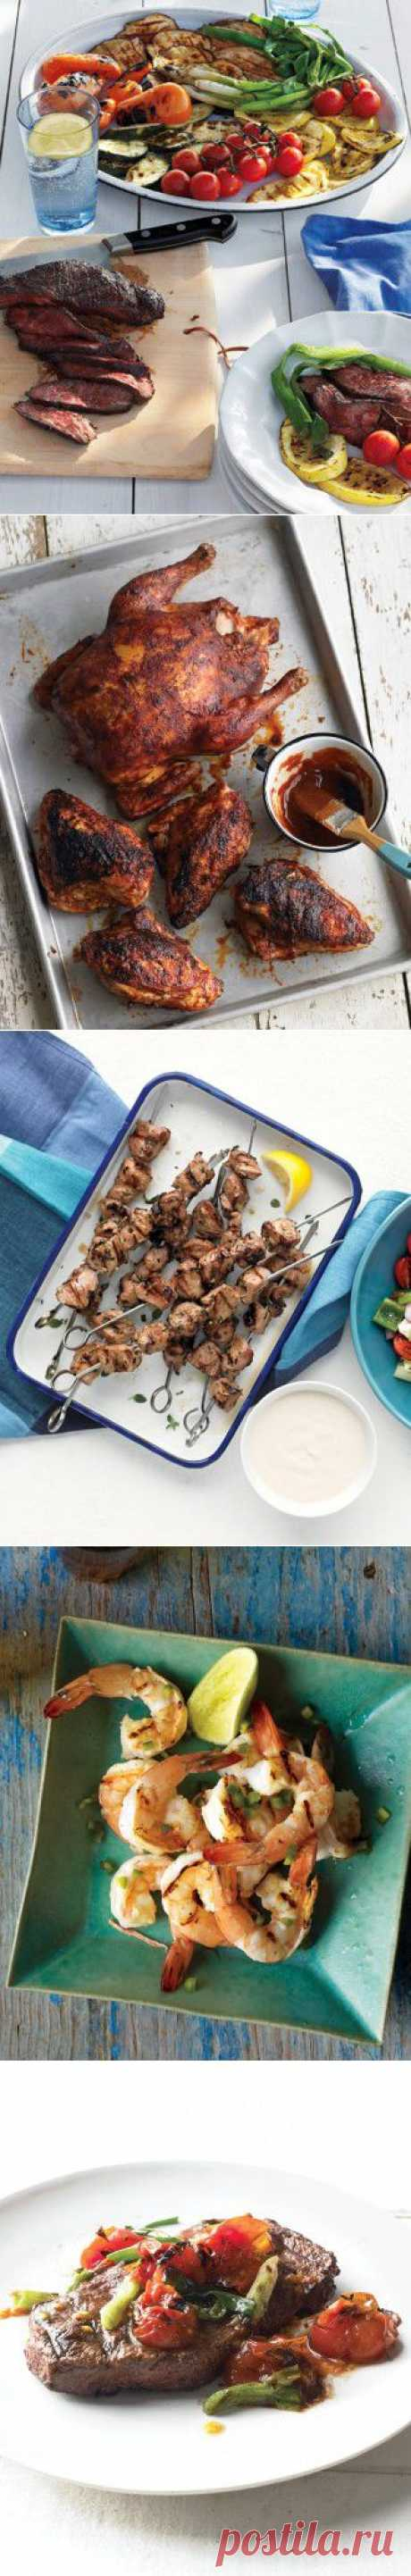 Grilling Recipes | How To and Instructions | Martha Stewart